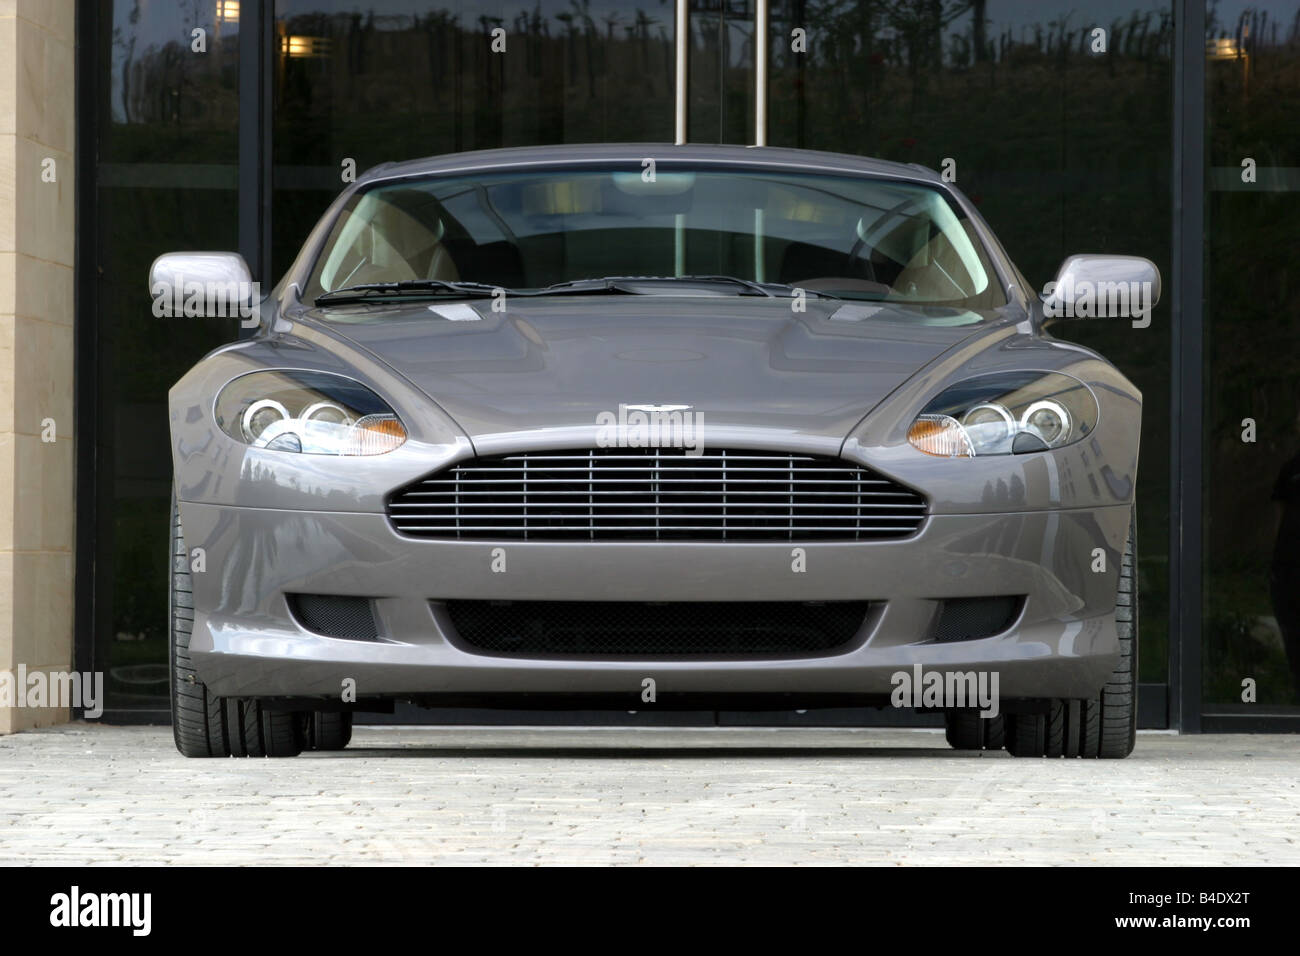 Car, Aston Martin DB9, Roadster, Coupe/Coupe, Silver Anthracite, Model Year  2003 , Standing, Upholding, Front View